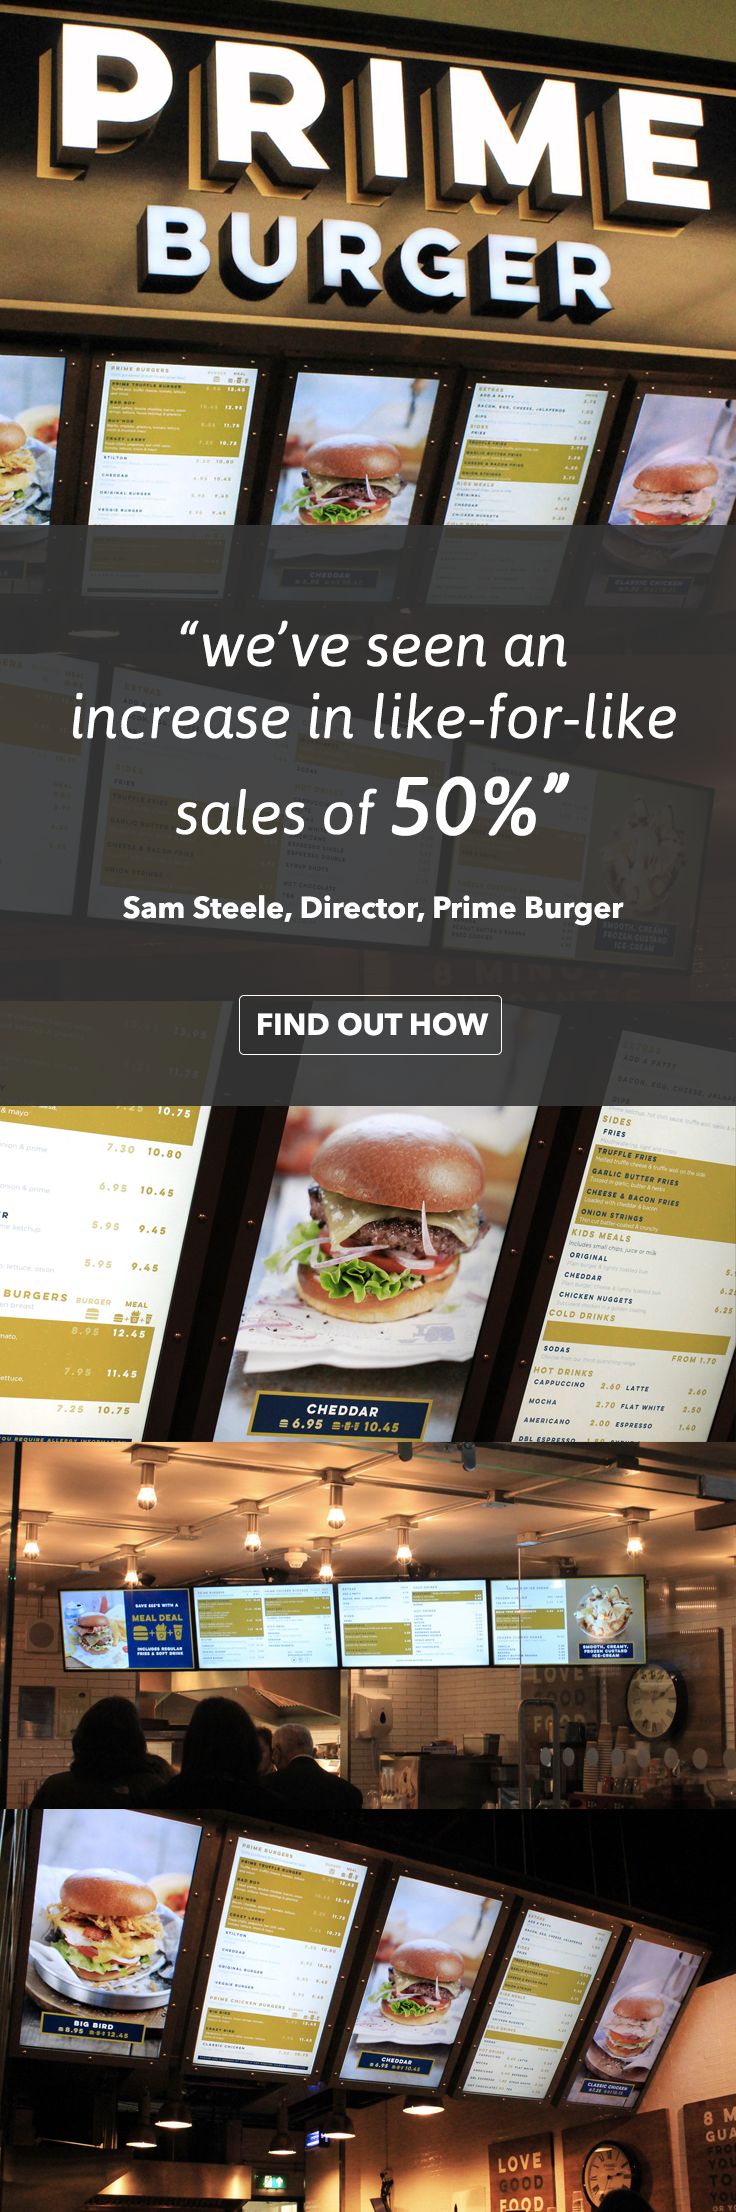 Find out how Prime Burger realised a 50% - 75% increase in like-for-like sales at their London Fast Casual Restaurants located at ExCel, Euston Train Station and St Pancras International Train Station: https://www.eclipsedigitalmedia.co.uk/project/prime-burger/ #digitalsignage #digitalmenus #digitalmenuboards